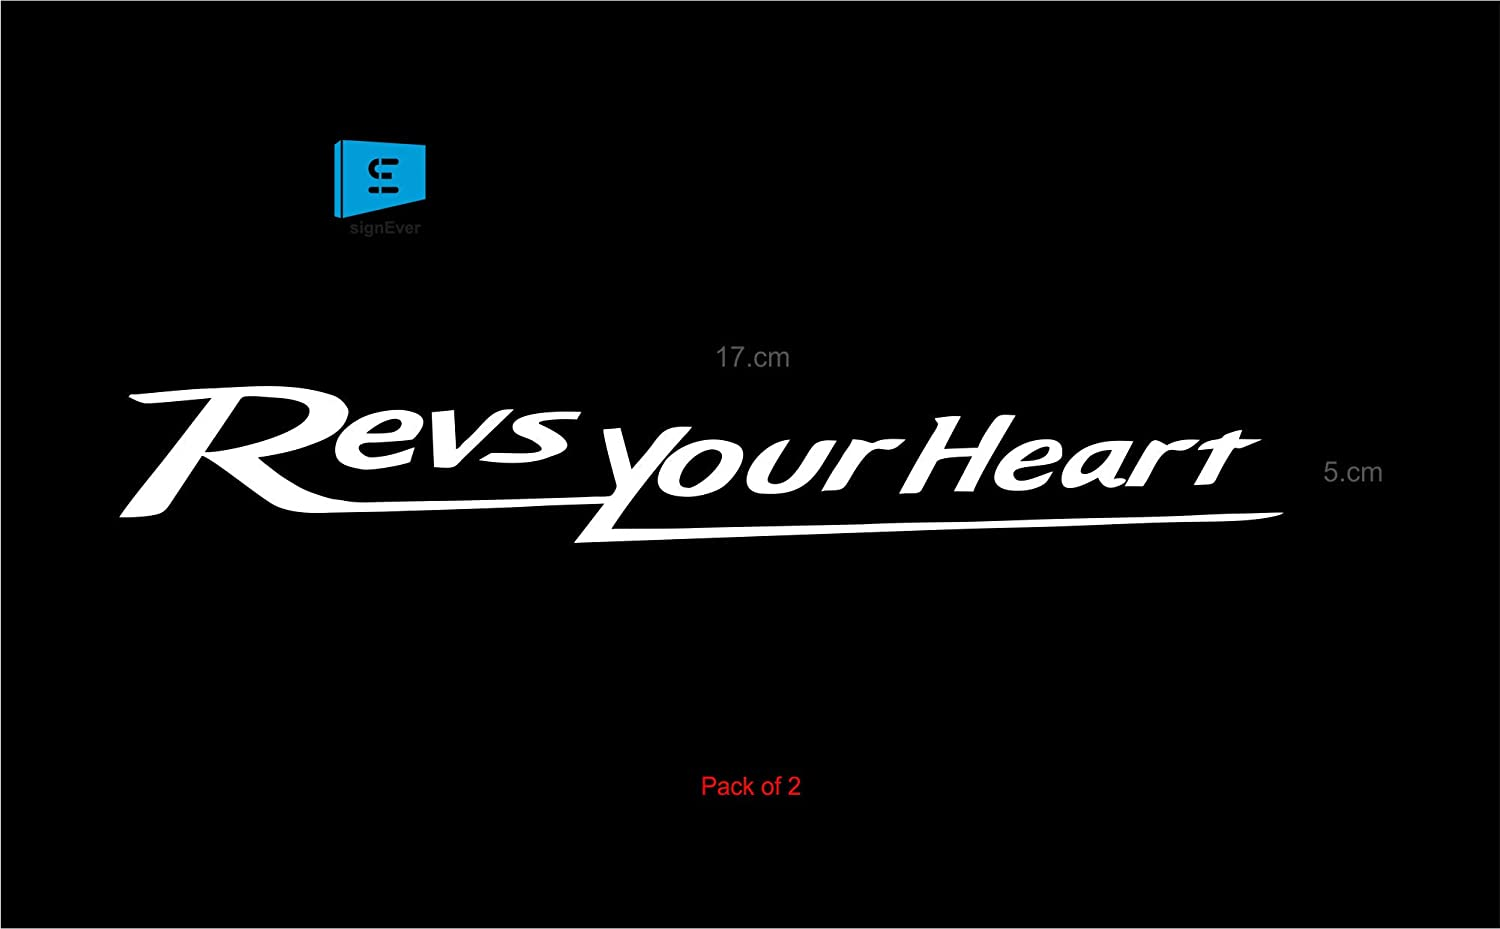 Sign ever bike and helmet decals sticker for yamaha revs your heart fz fzs r15 v2 7x5 cm white pack of 2 amazon in car motorbike